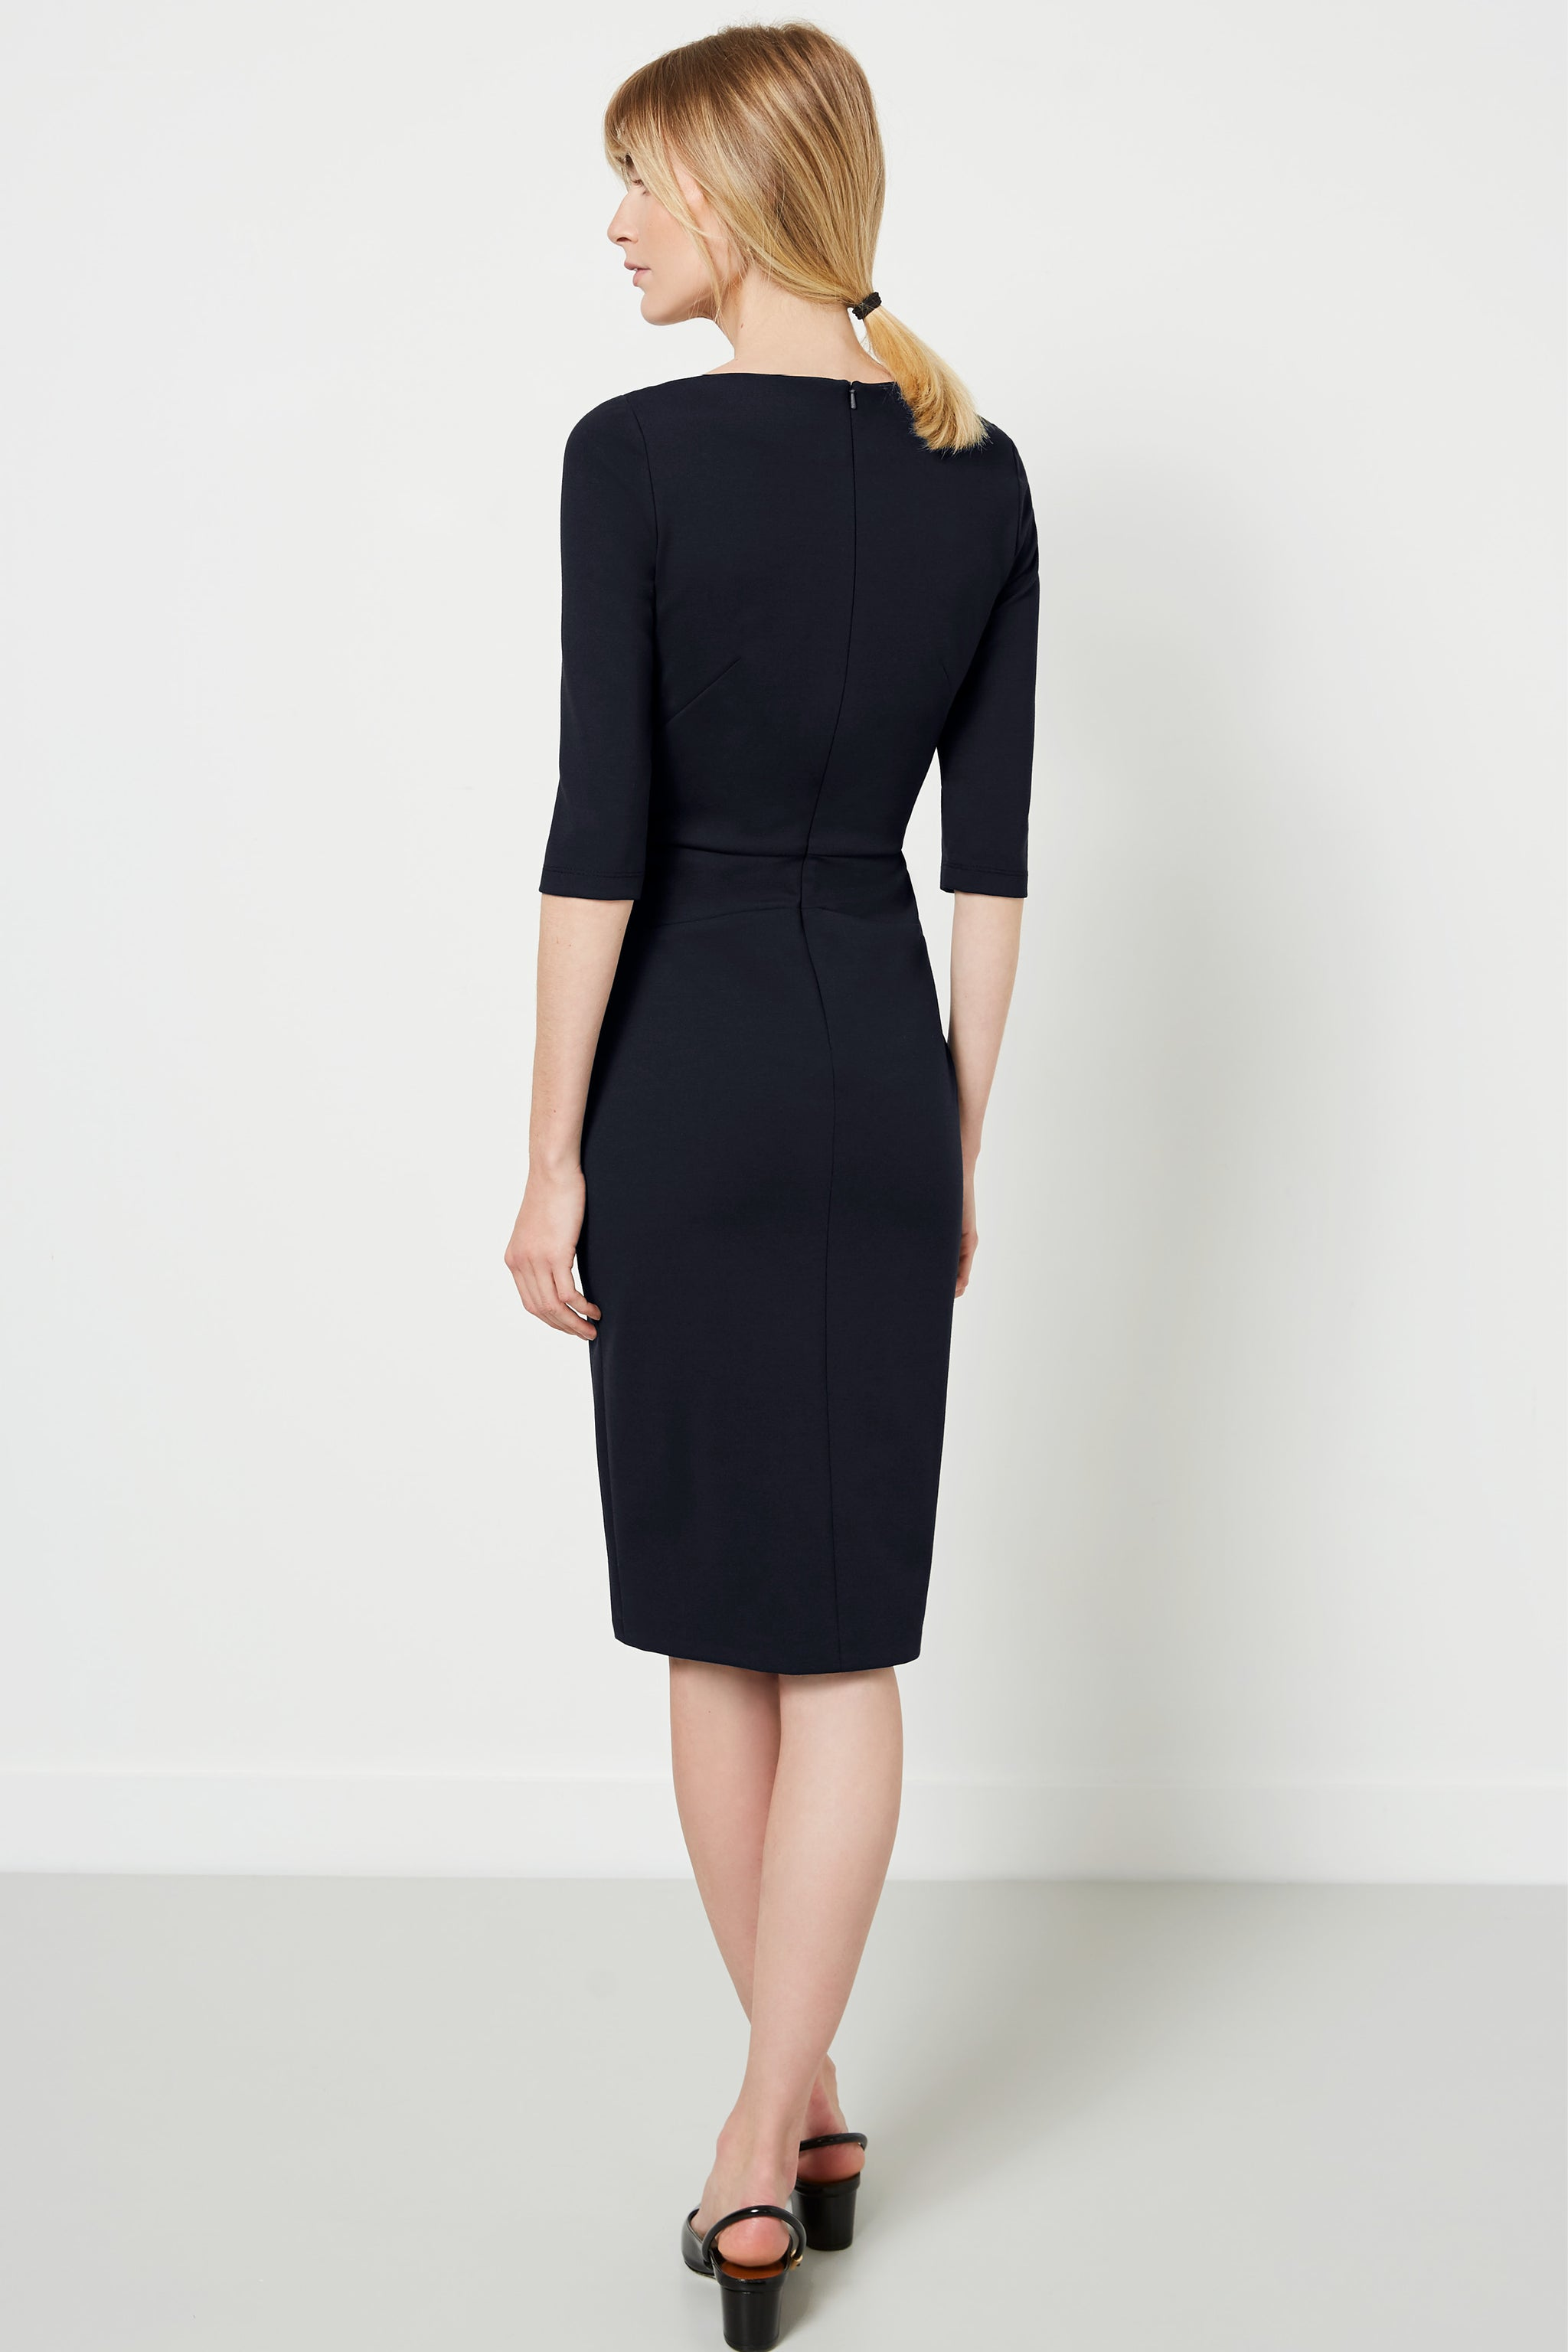 Cavendish Navy Dress